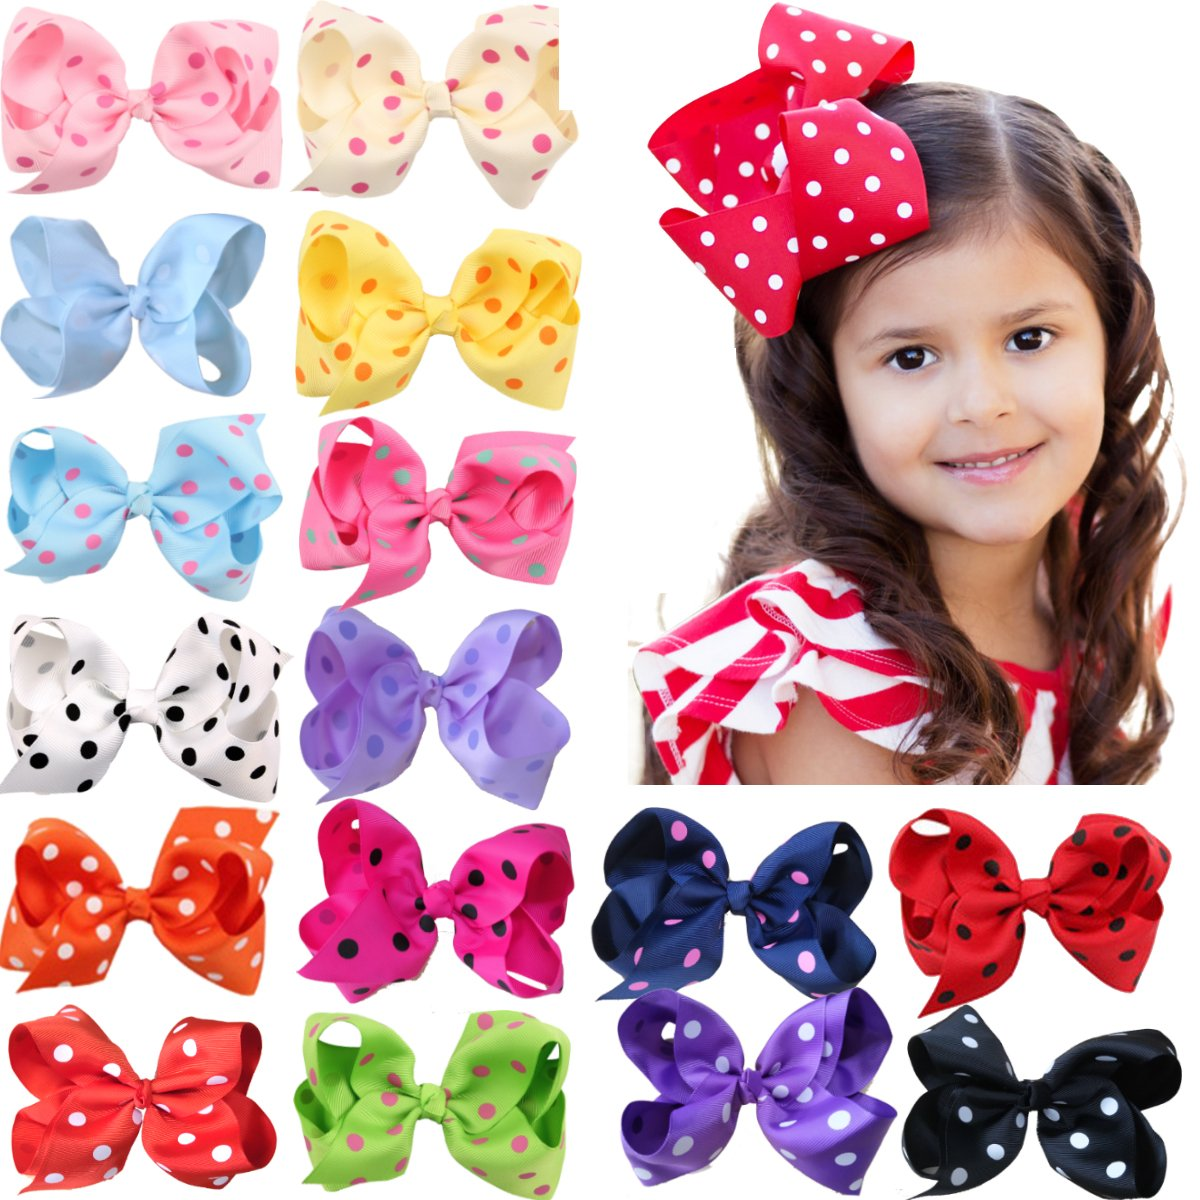 16Pcs 6'' Large Big Girls Hair Accessories Polka Dot Boutique Hair Bows Baby Girls Grosgrain Ribbon Hair Bows Clips for Toddlers Kids Children Teens